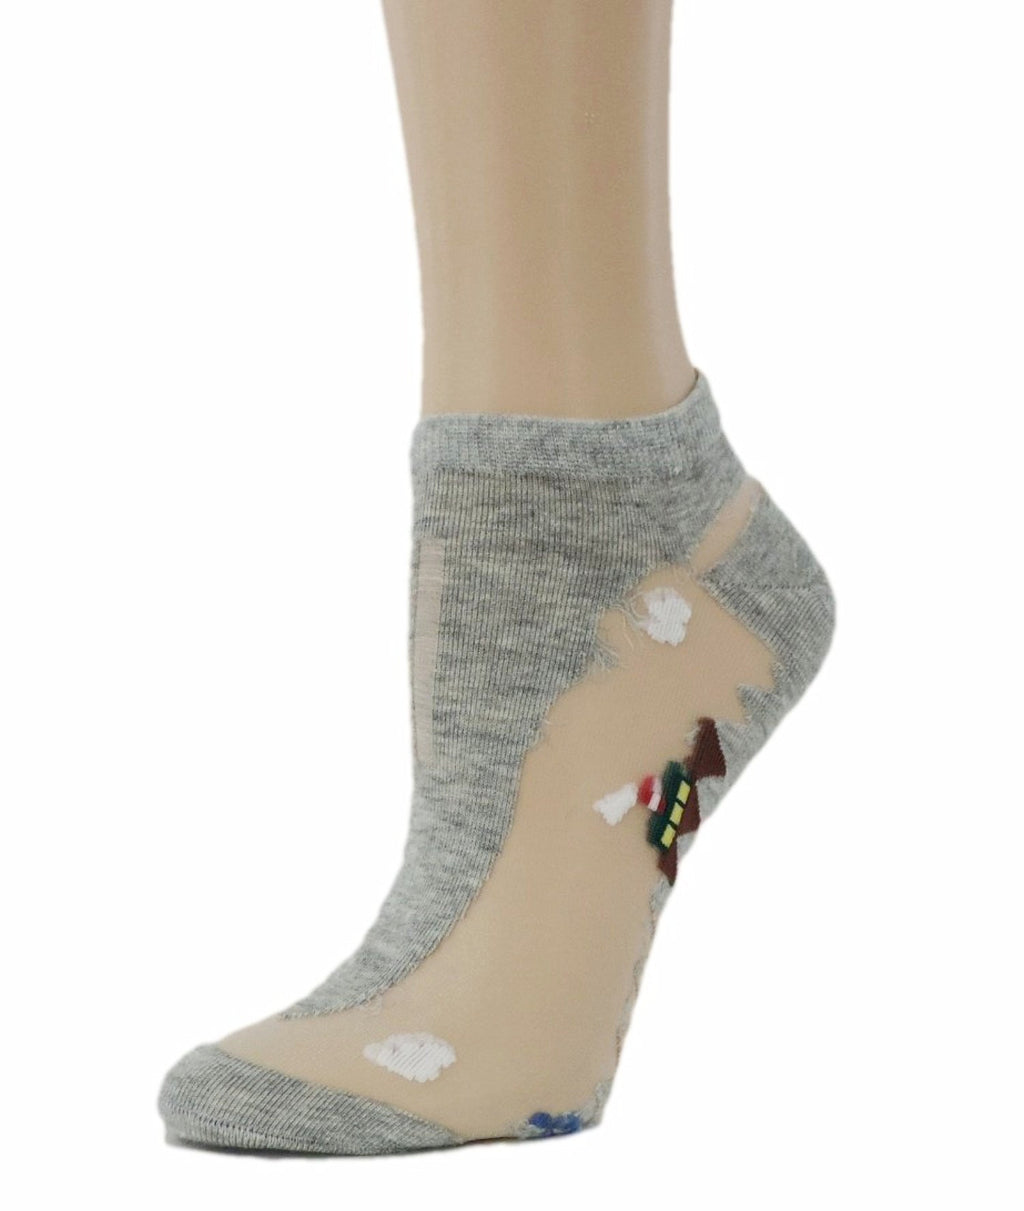 Pretty Grey Ankle Sheer Socks - Global Trendz Fashion®